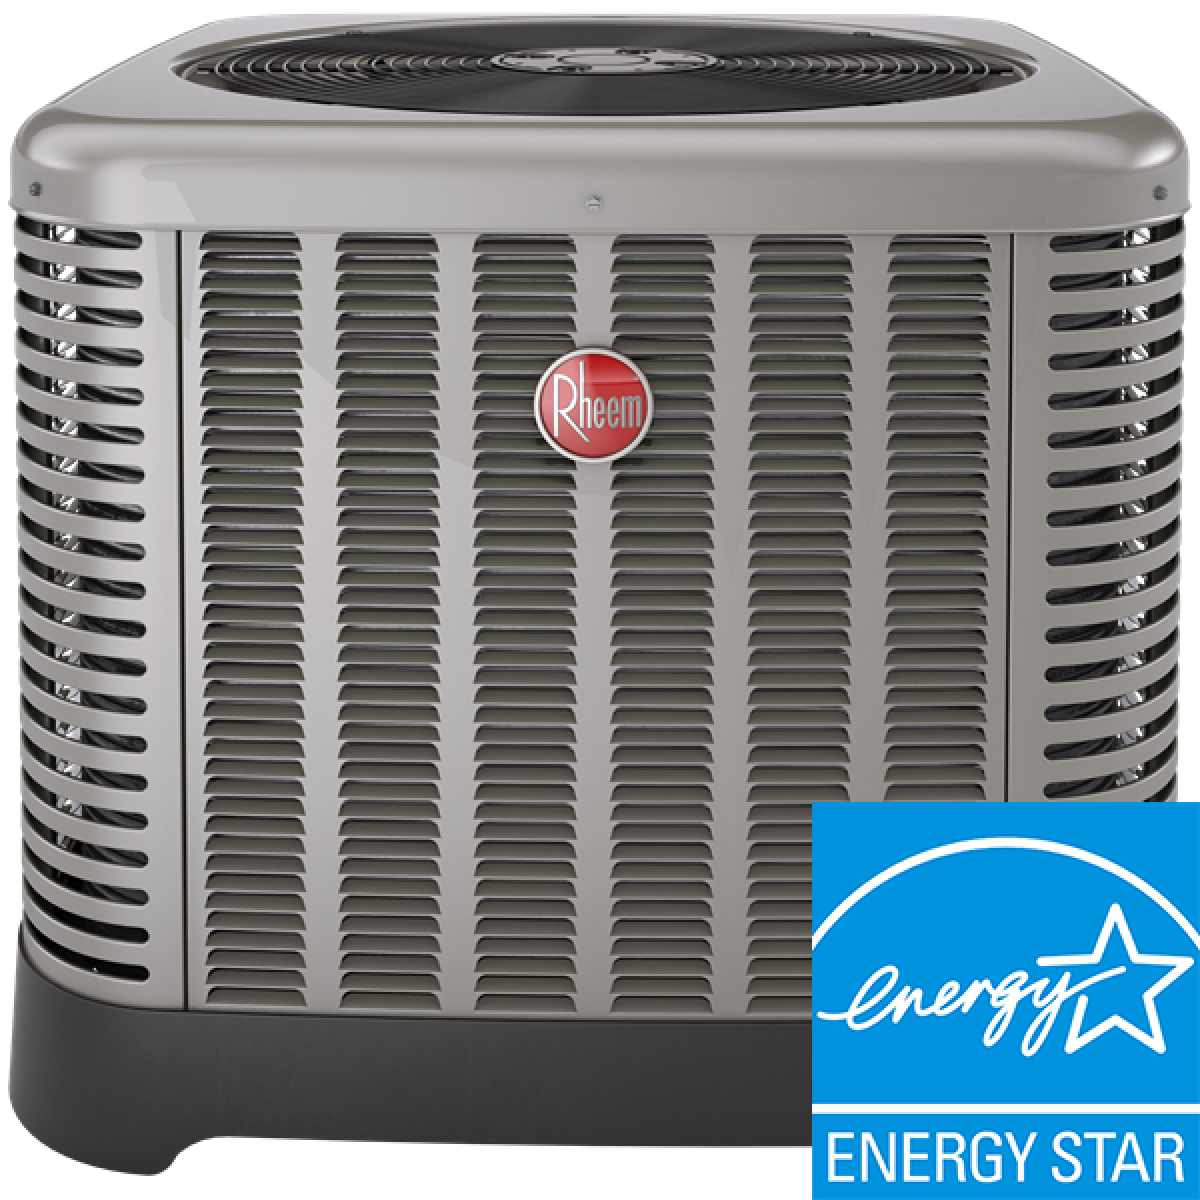 #0384C8 Rheem RA16 SEER 2T Single Stage Straight Cool Condenser In  Recommended 57 2 Ton Ac System pics with 1200x1200 px on helpvideos.info - Air Conditioners, Air Coolers and more